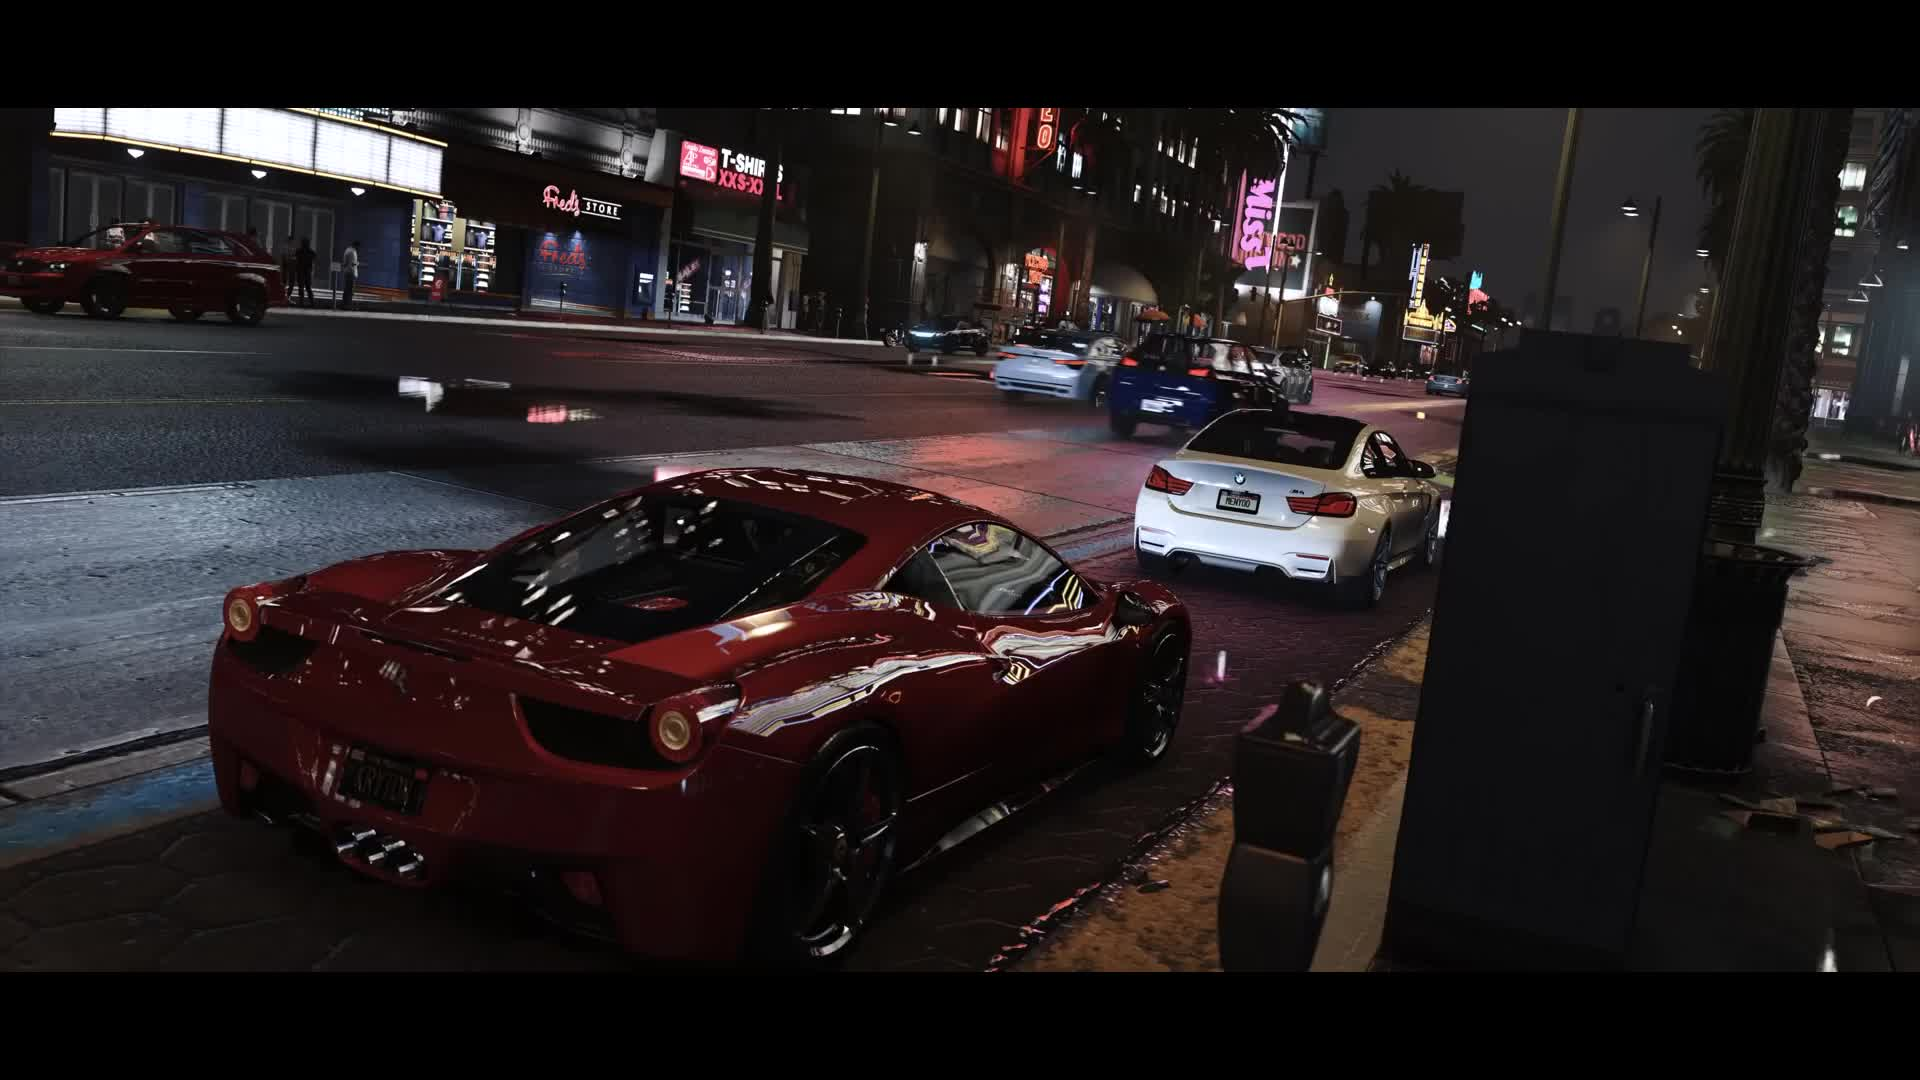 grand theft auto, gta5, mod, GTA5 natural vision by hazed GIFs